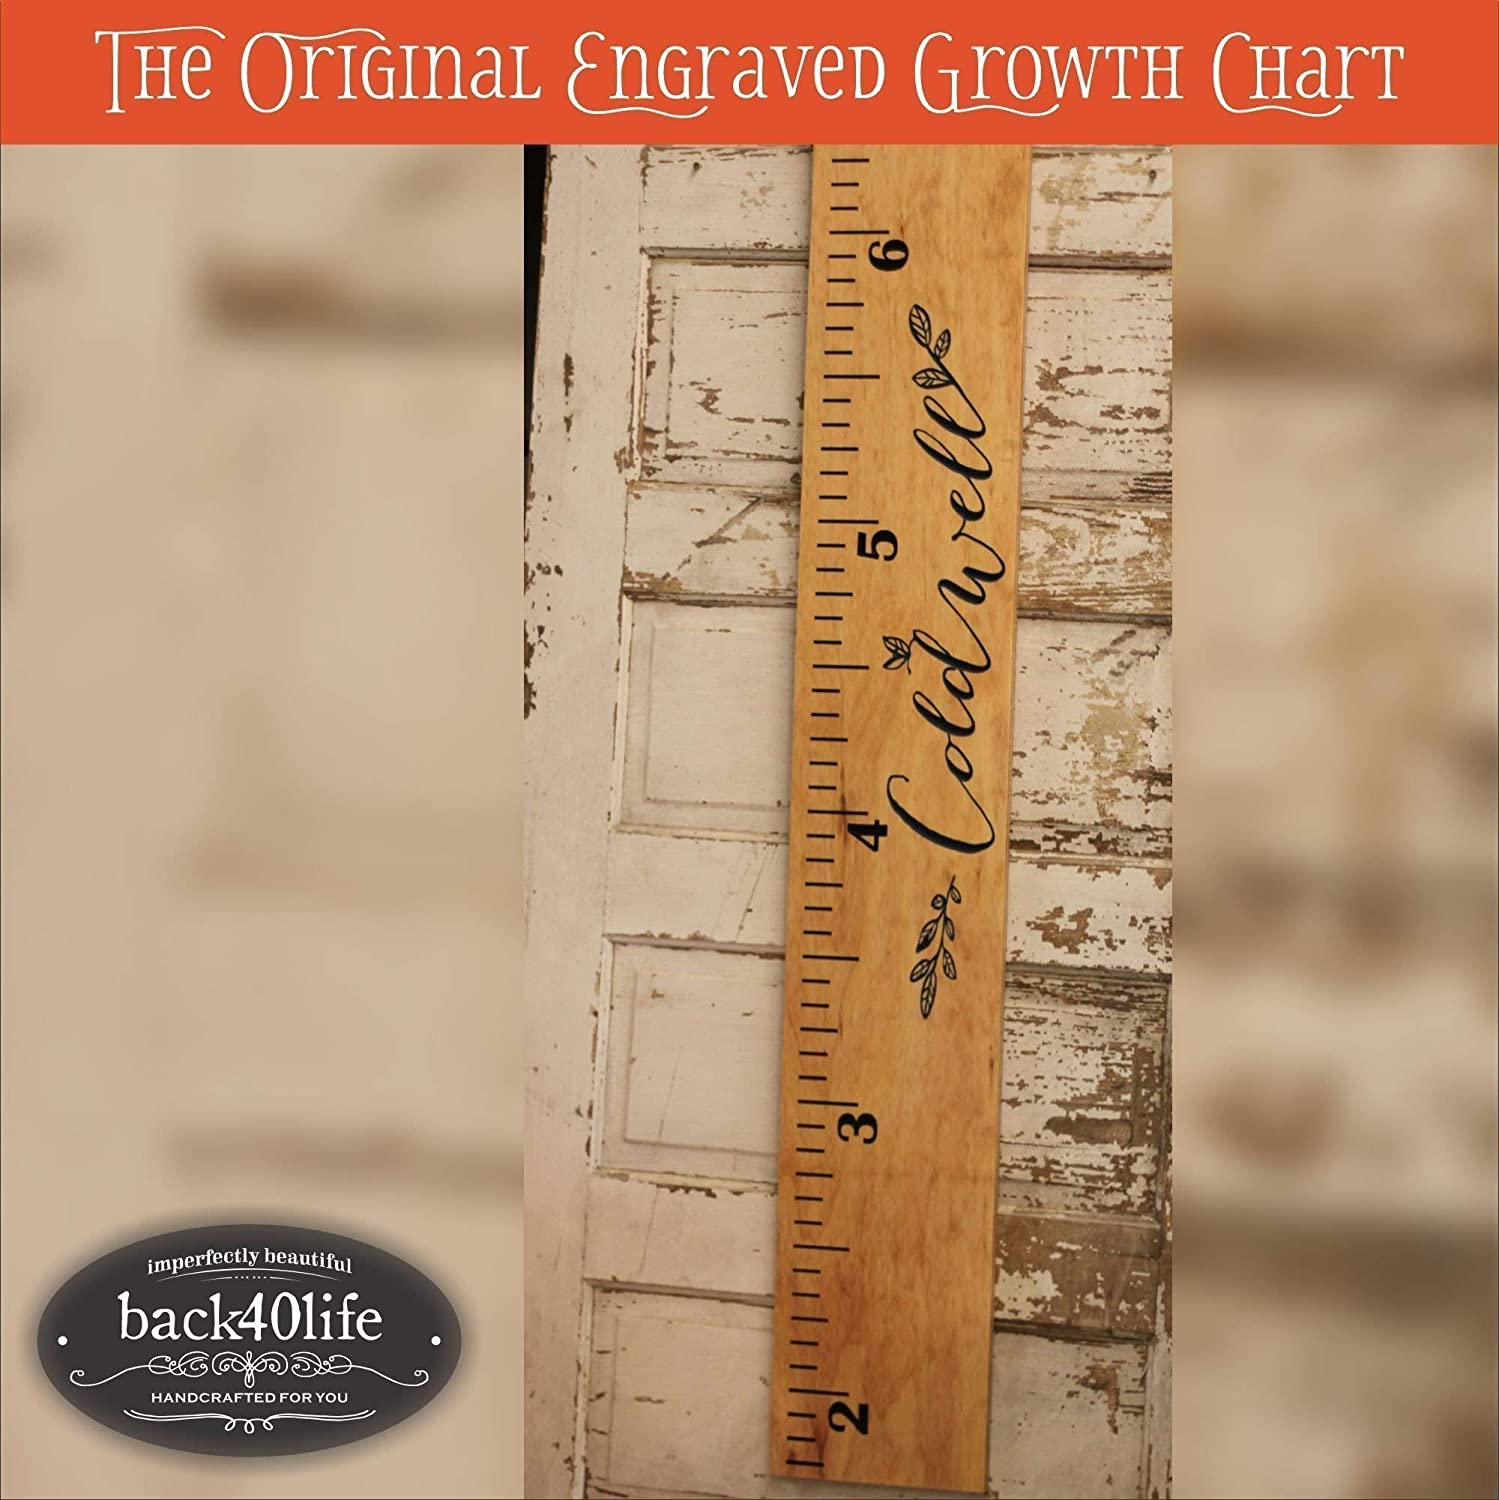 Engraved wooden ruler growth height chart (The Coldwell) - premium engraved lettering with name and leaf flourish (GC-Cold)